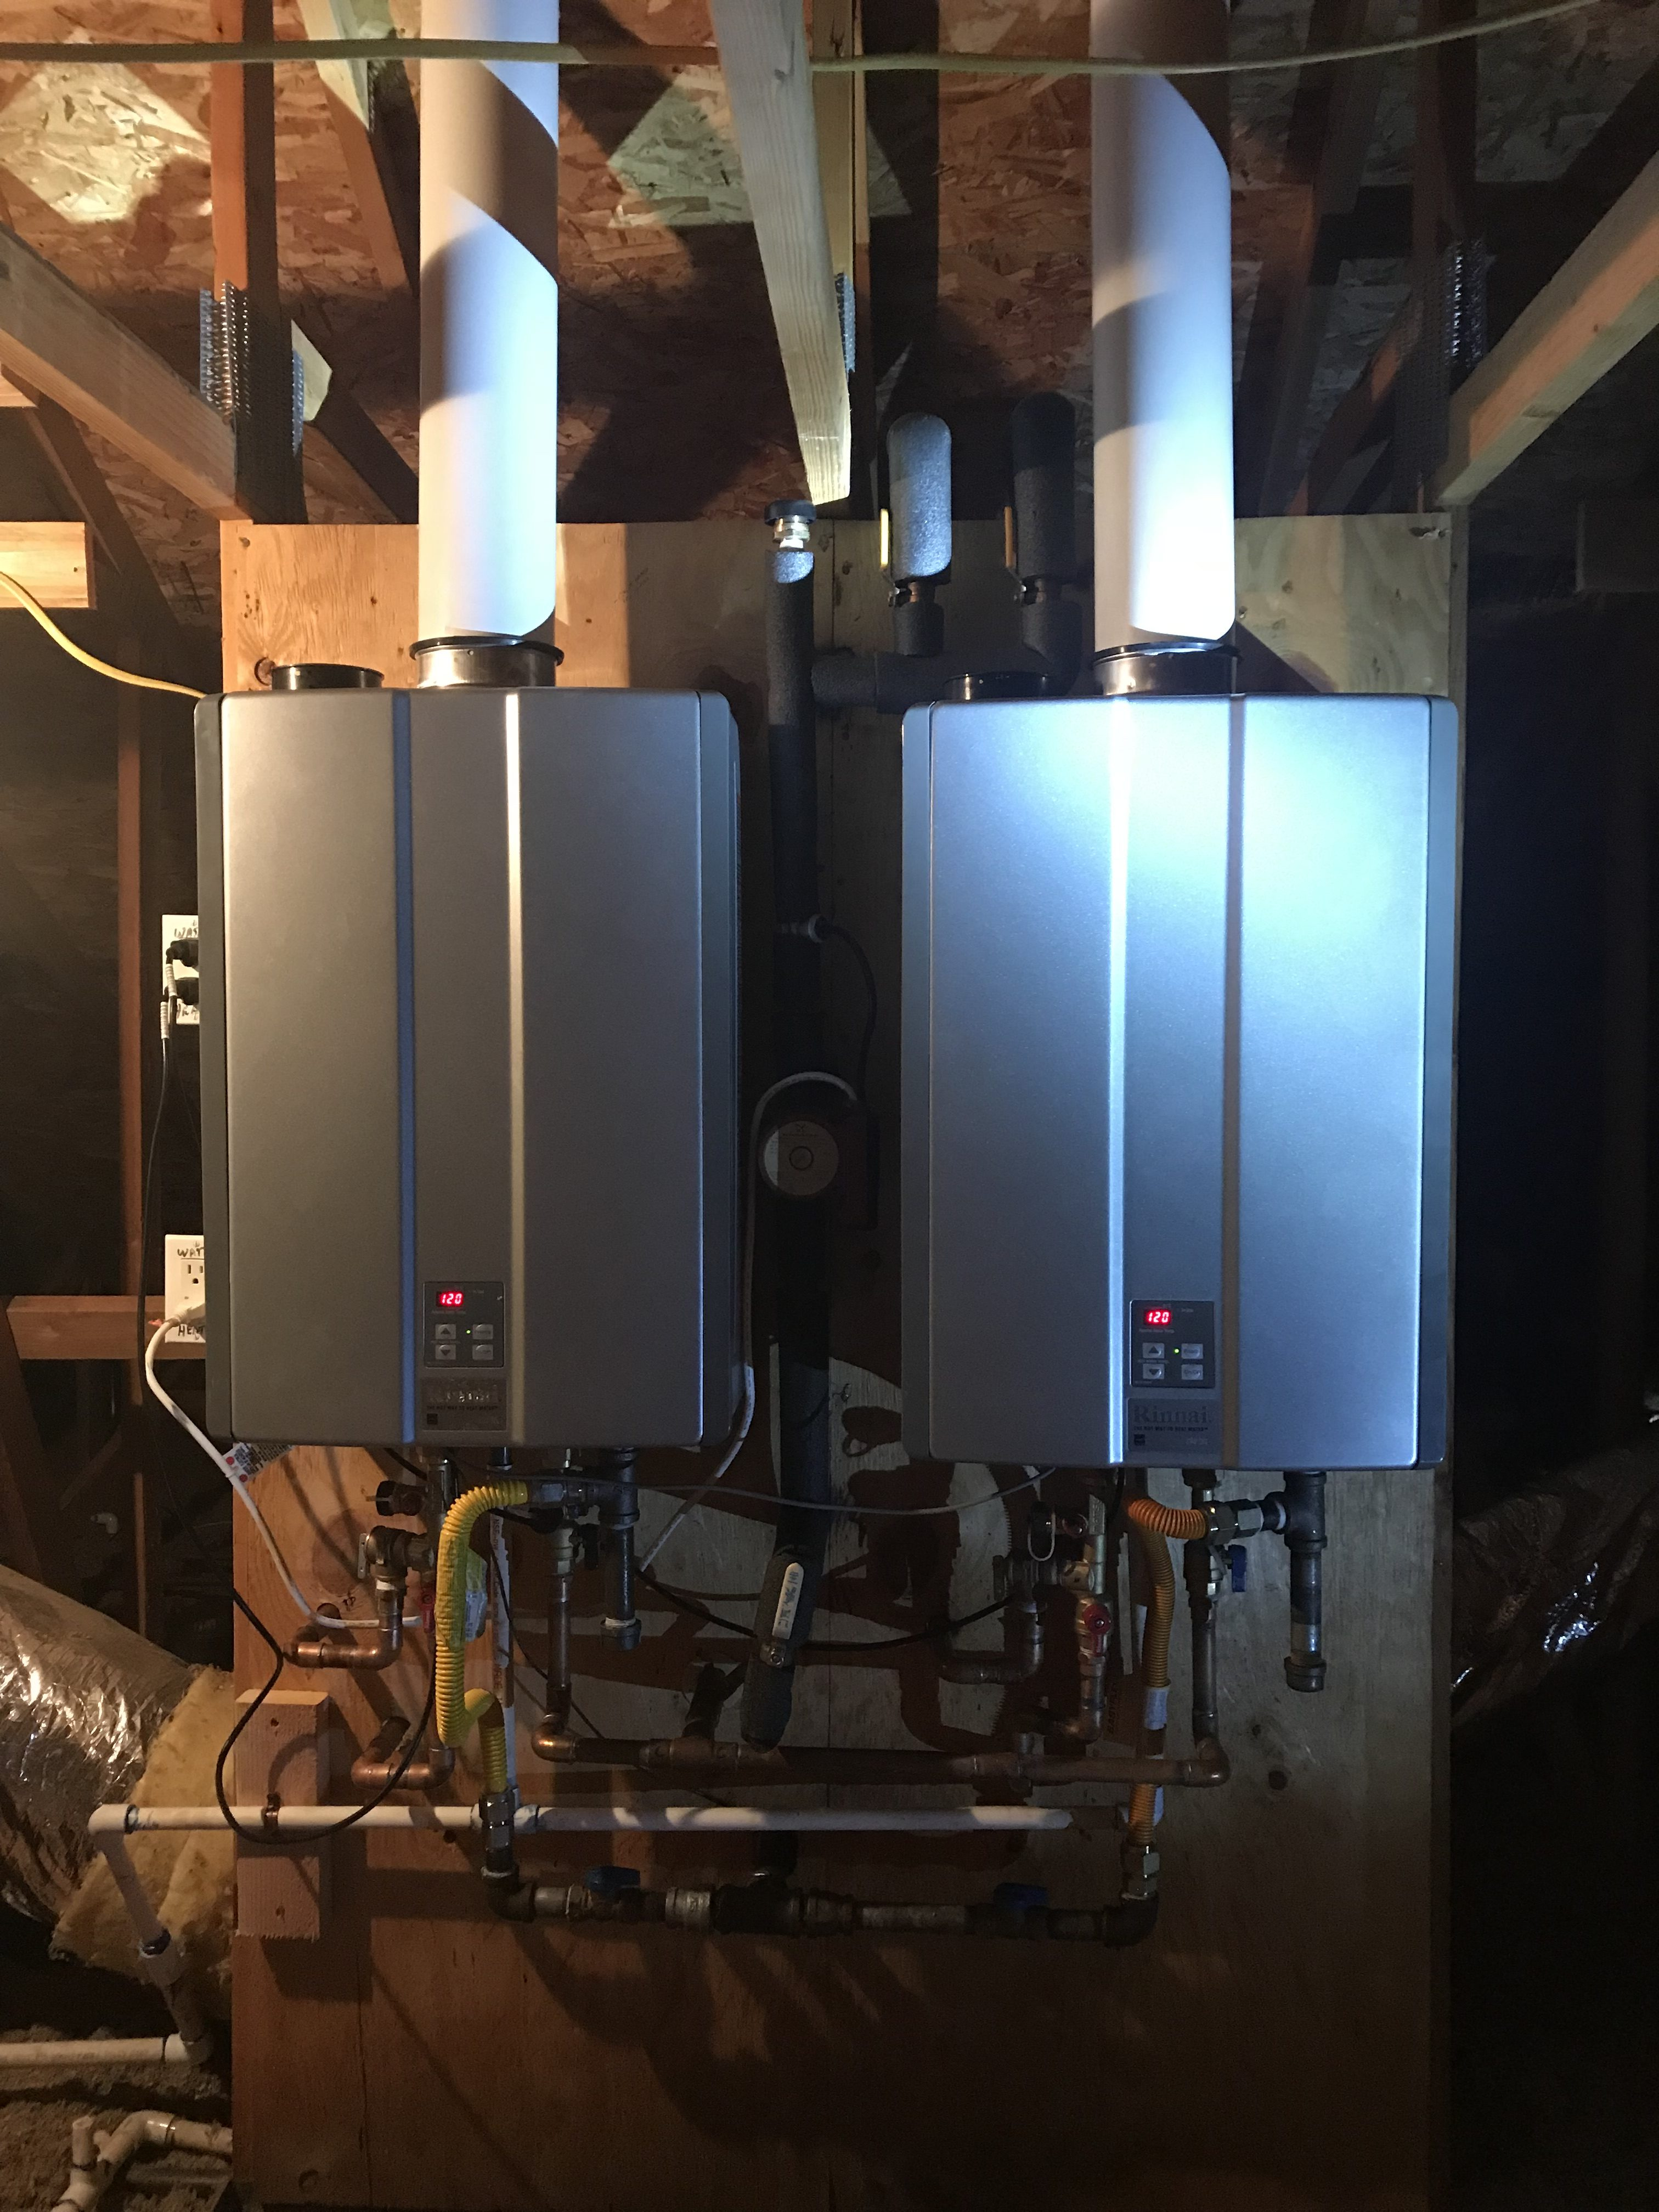 d martel plumbing tankless water heater installation (2)